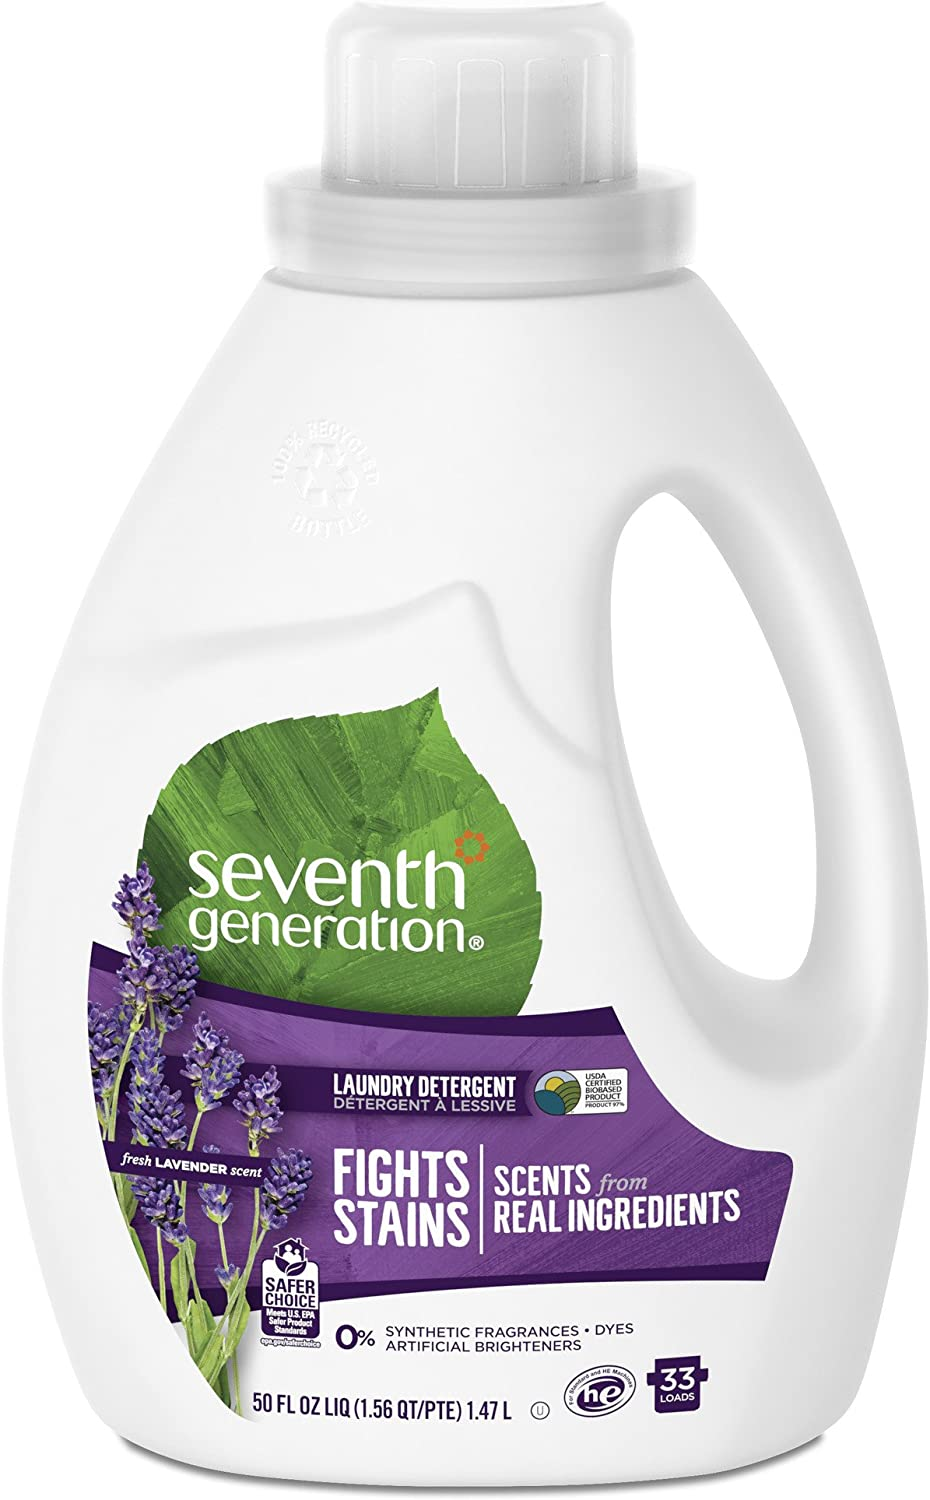 Seventh Generation Liquid Laundry Detergent, Fresh Lavender scent, 50 oz, 33 loads (Packaging May Vary)